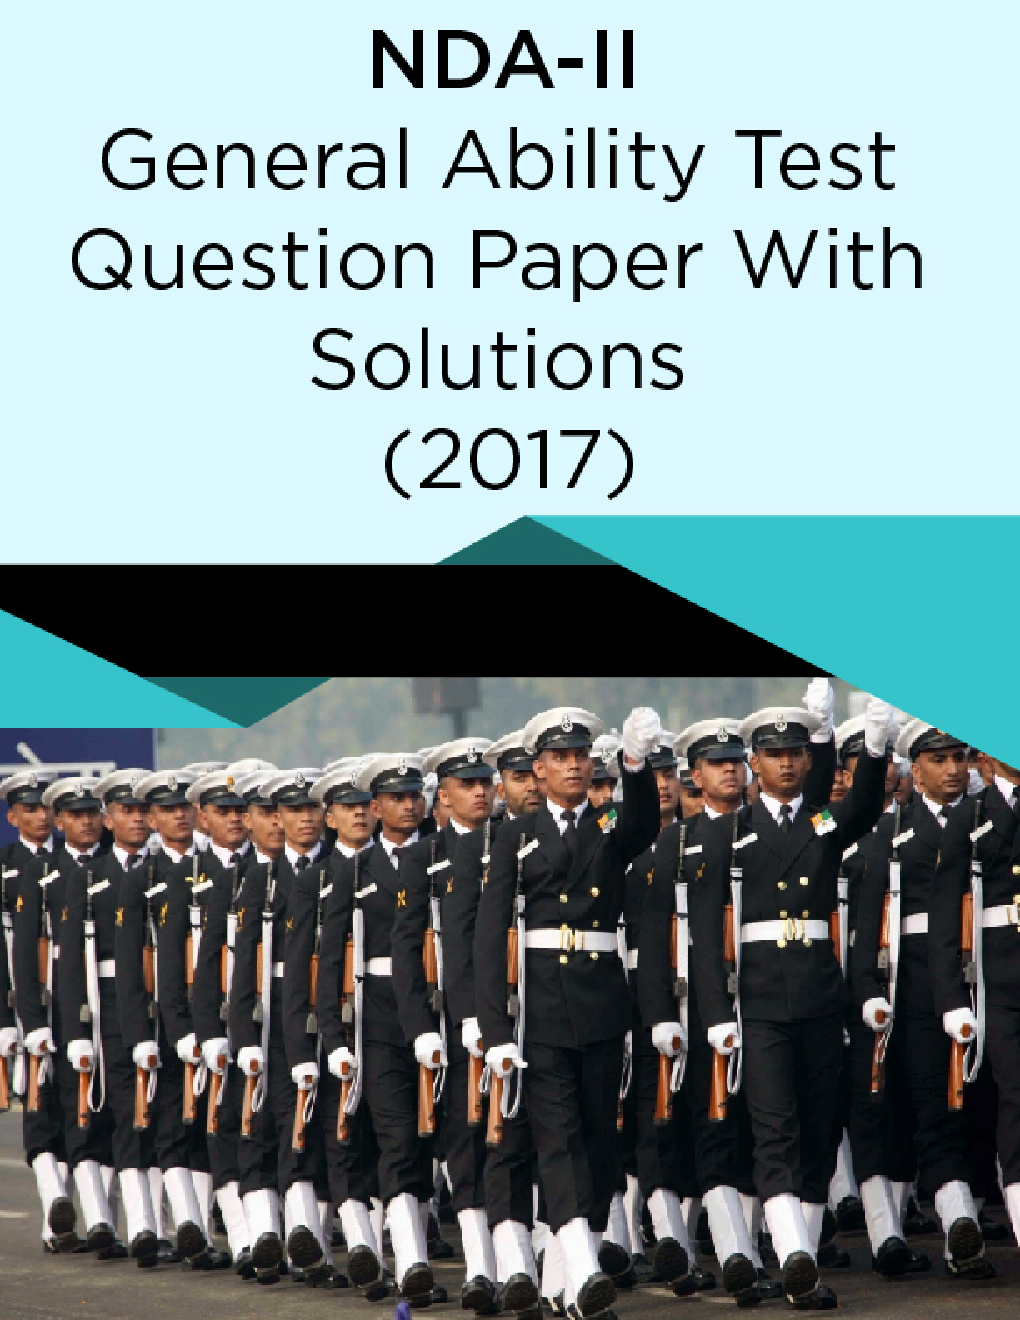 NDA-II General Ability Test Question Paper With Solutions (2017) - Page 1